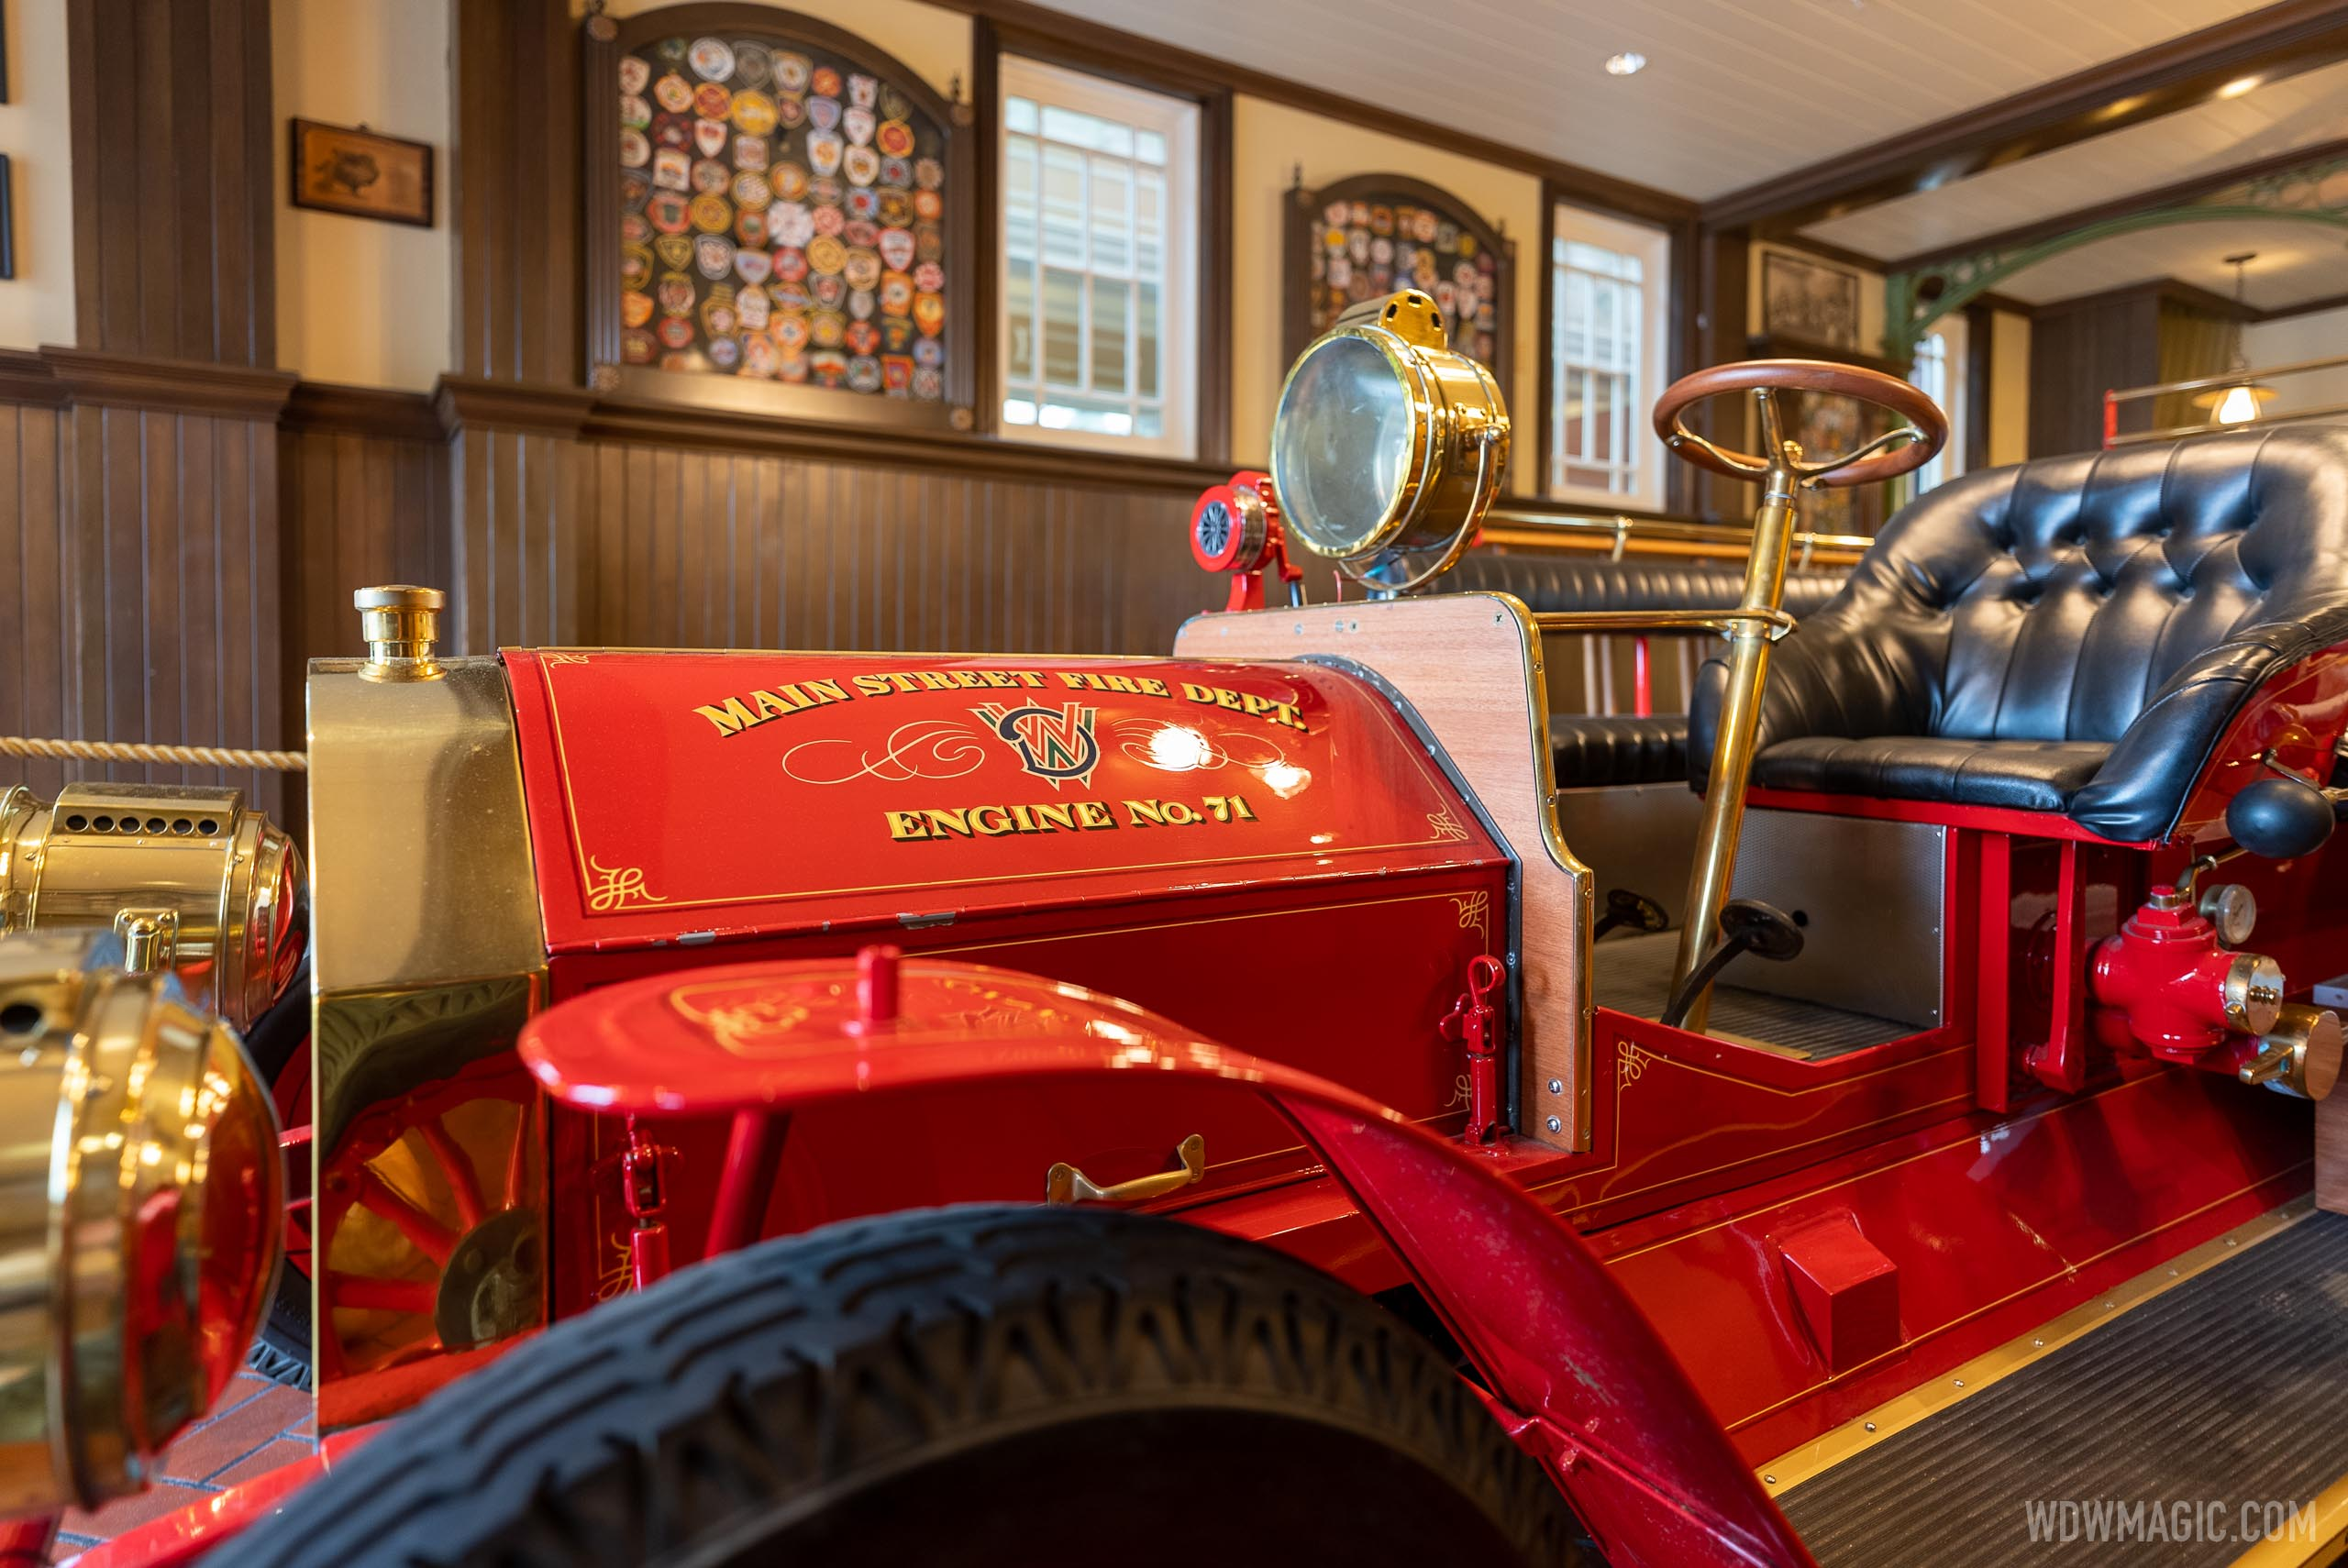 Sorcerers of the Magic Kingdom removal - March 29 2021